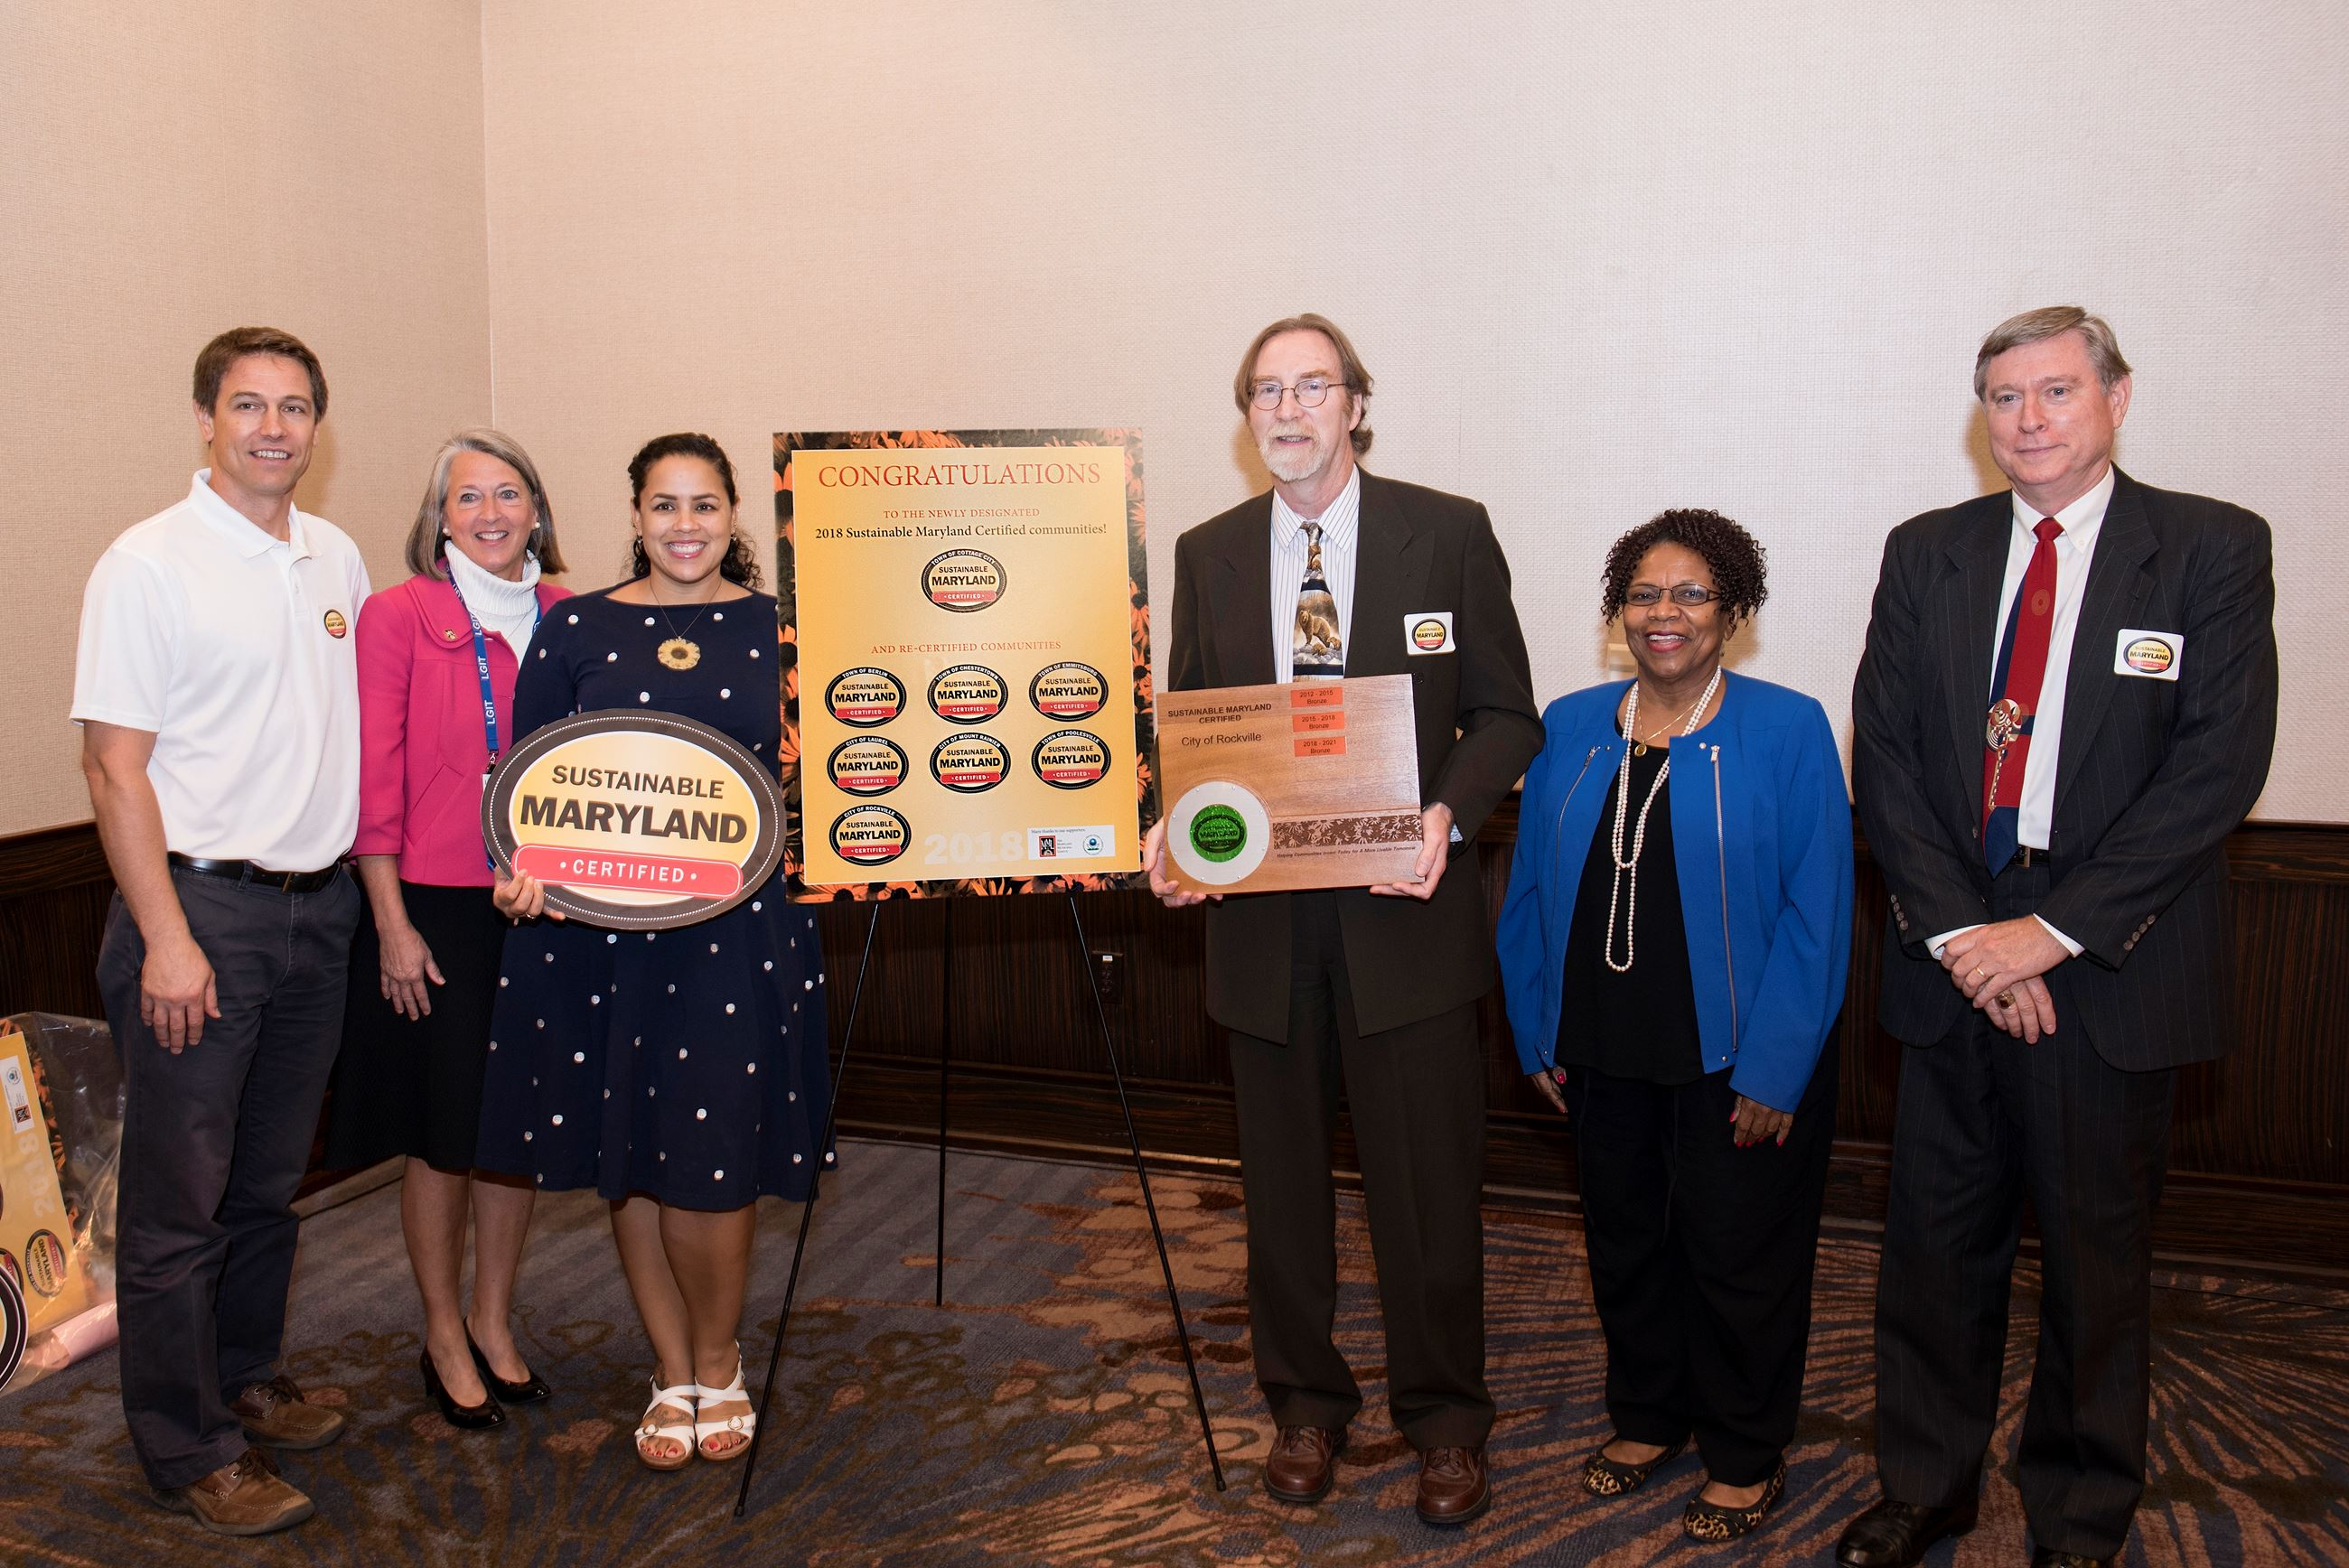 Photo of the City of Rockville receiving award as a Sustainable Maryland community.